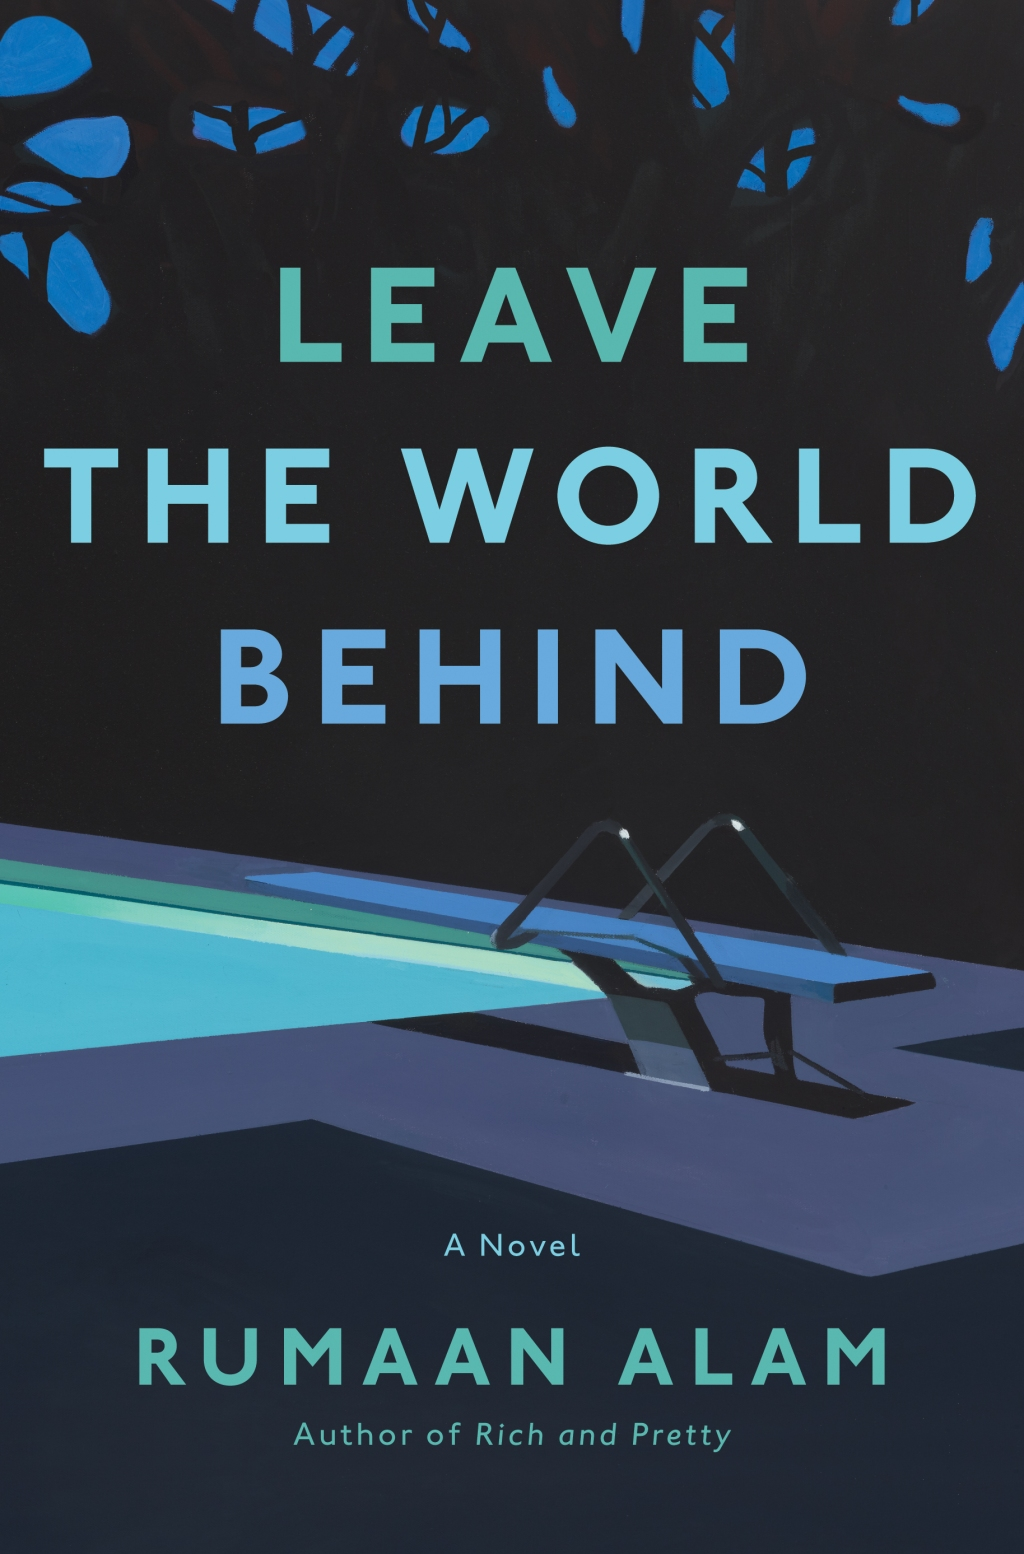 Book cover of 'Leave the World Behind' by Rumaan Alam